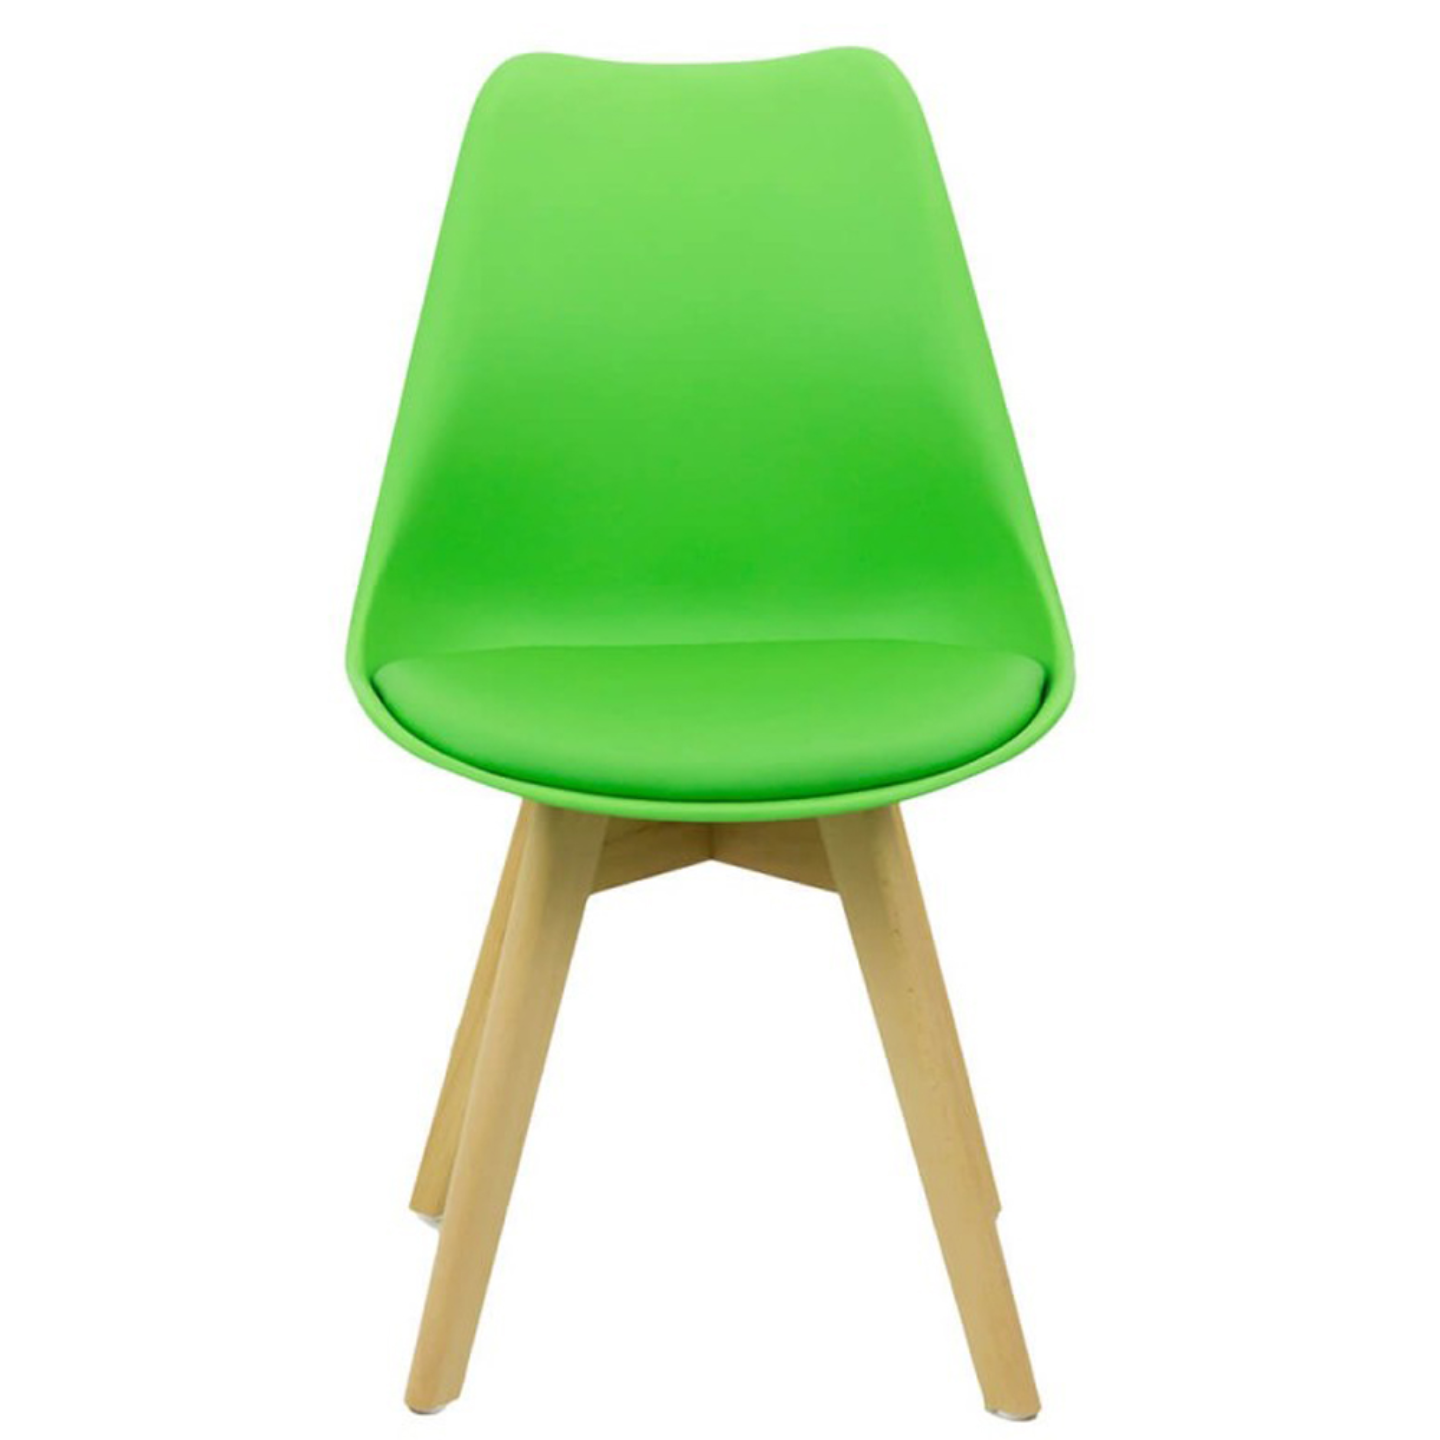 Cafe Chair Zeta C with Wooden Legs and Cushioned Seat